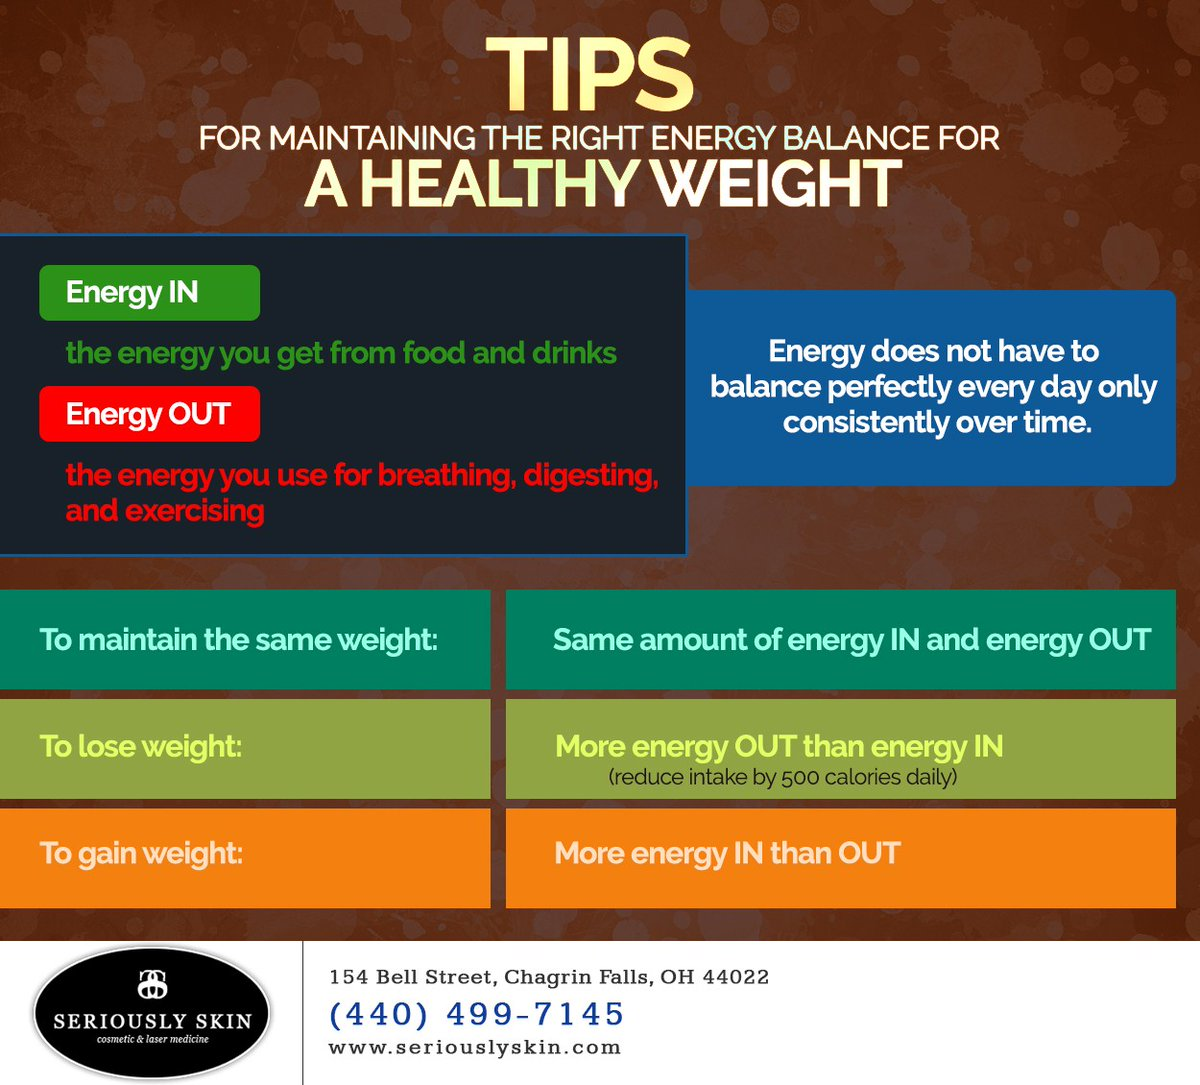 To maintain a #healthy weight, most people can achieve the right energy balance by eating a healthy diet, staying physically active, and reducing times of inactivity daily. #stayinshape #healthydiet #chagrinfalls #OH #seriouslyskin